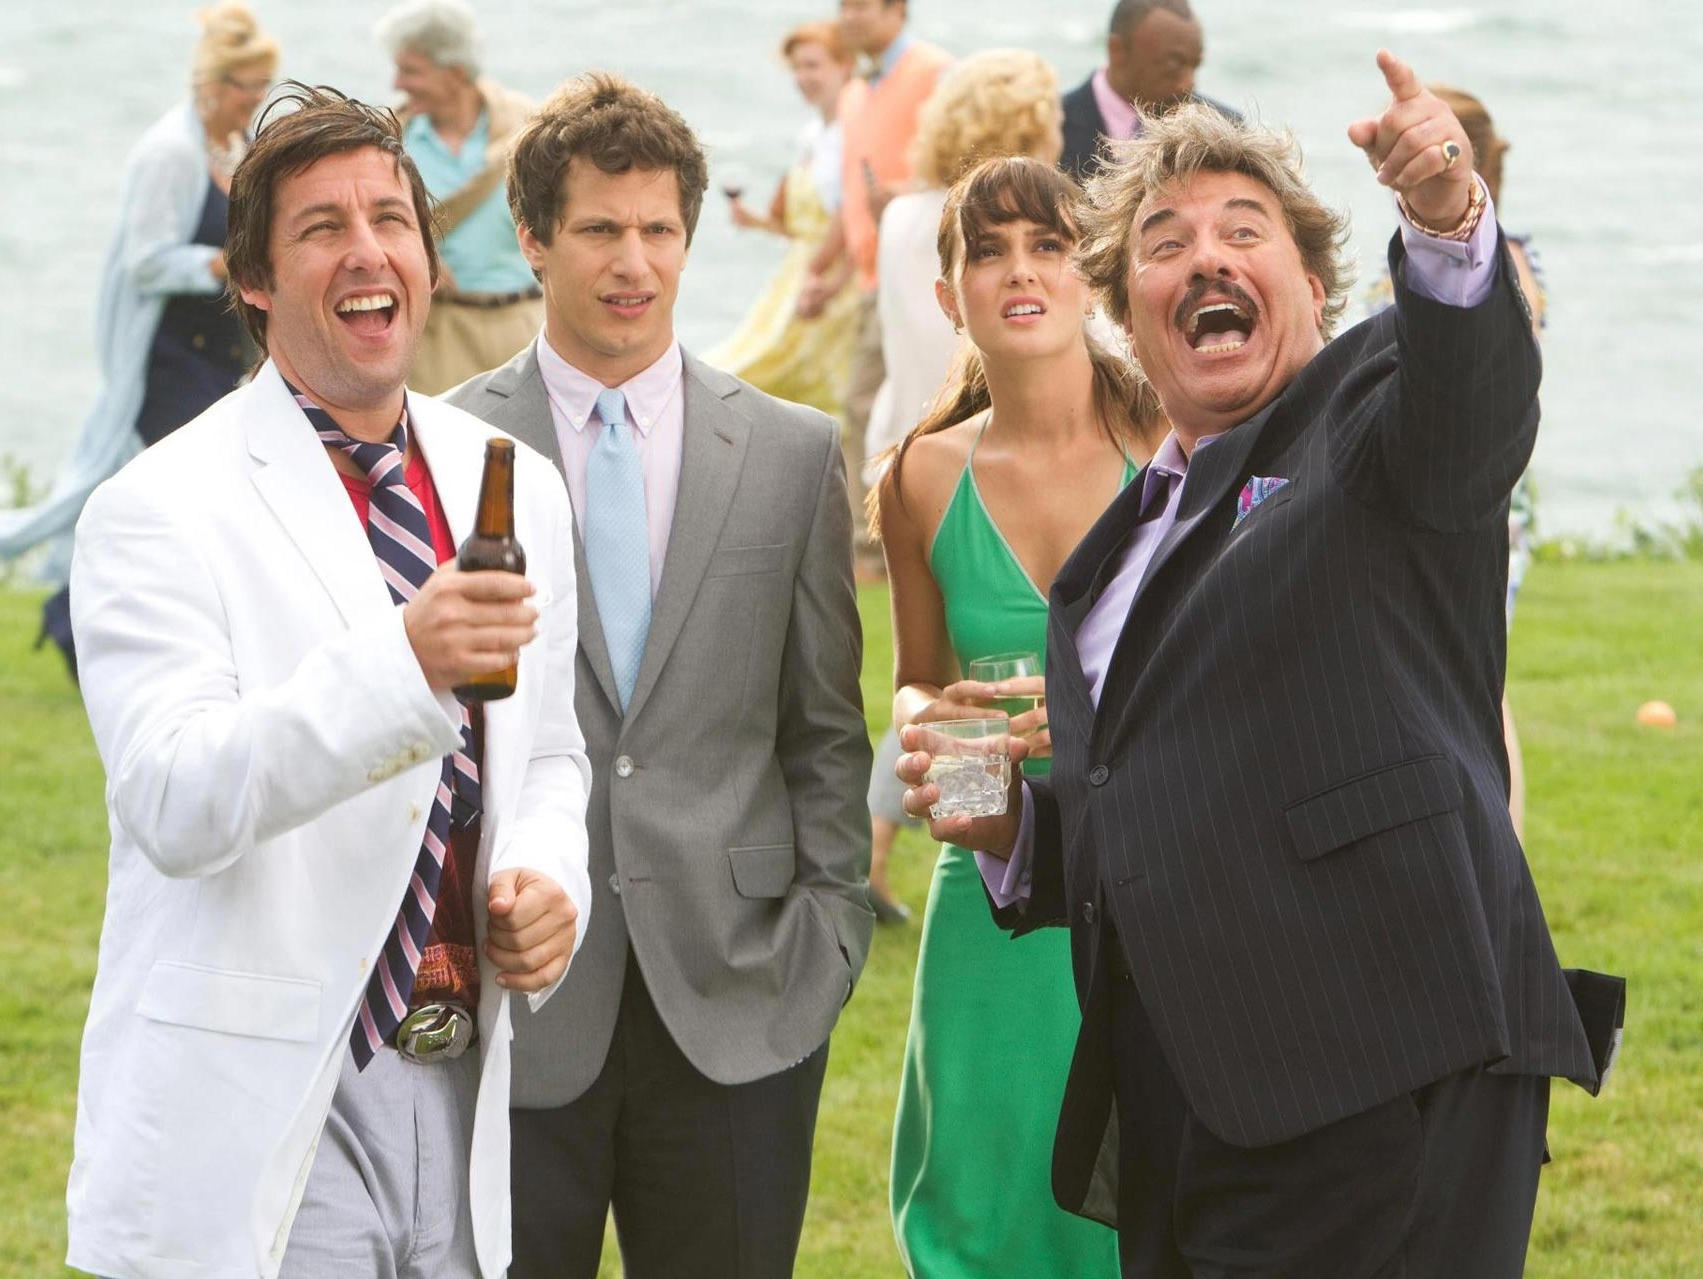 Box Office Predictions: 'Madagascar' Survives Sandler While 'Rock' Sinks